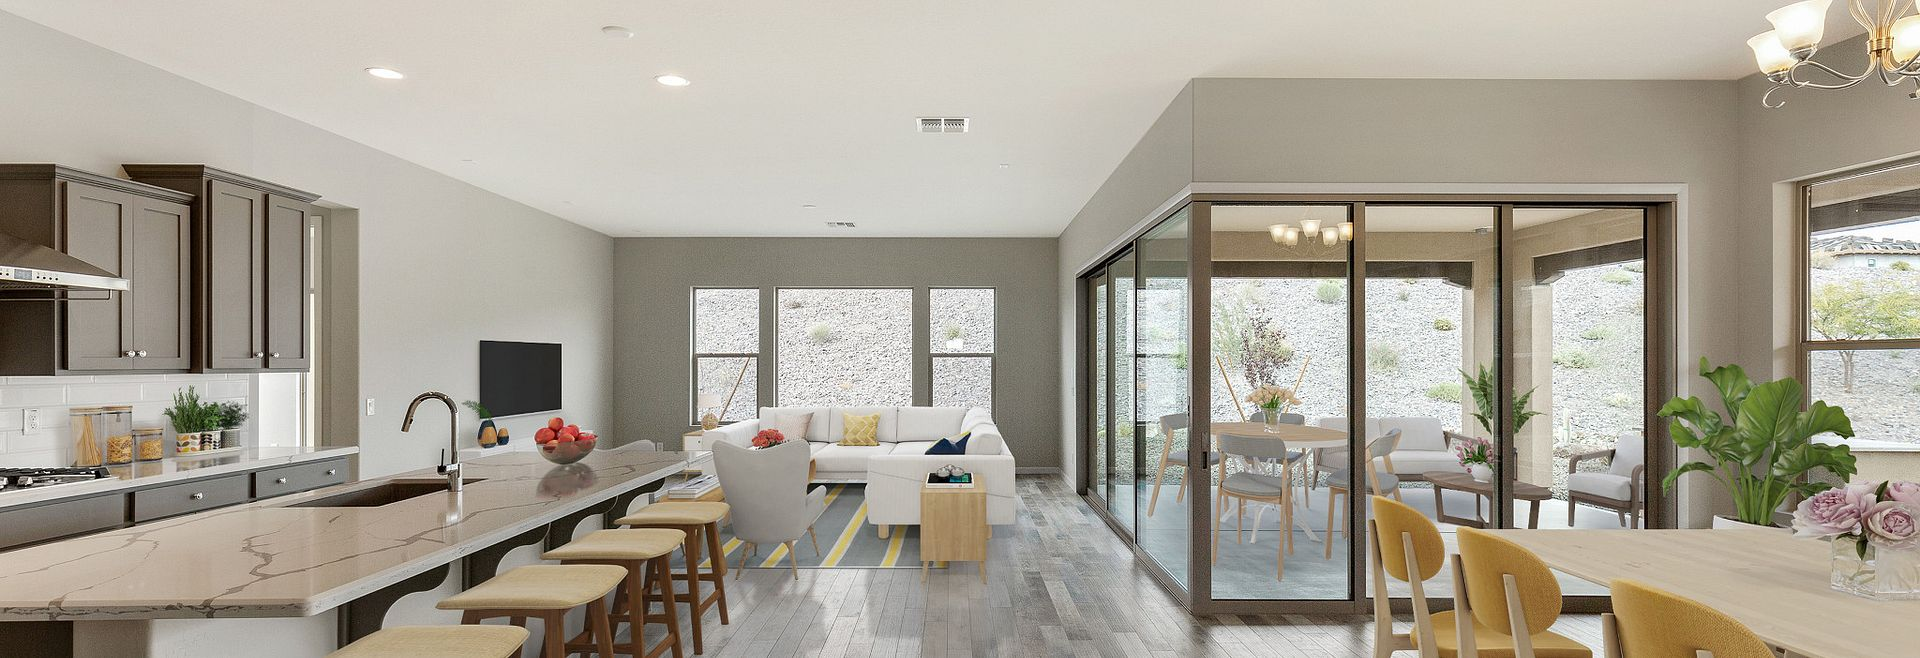 Virtually Rendered Home Interior